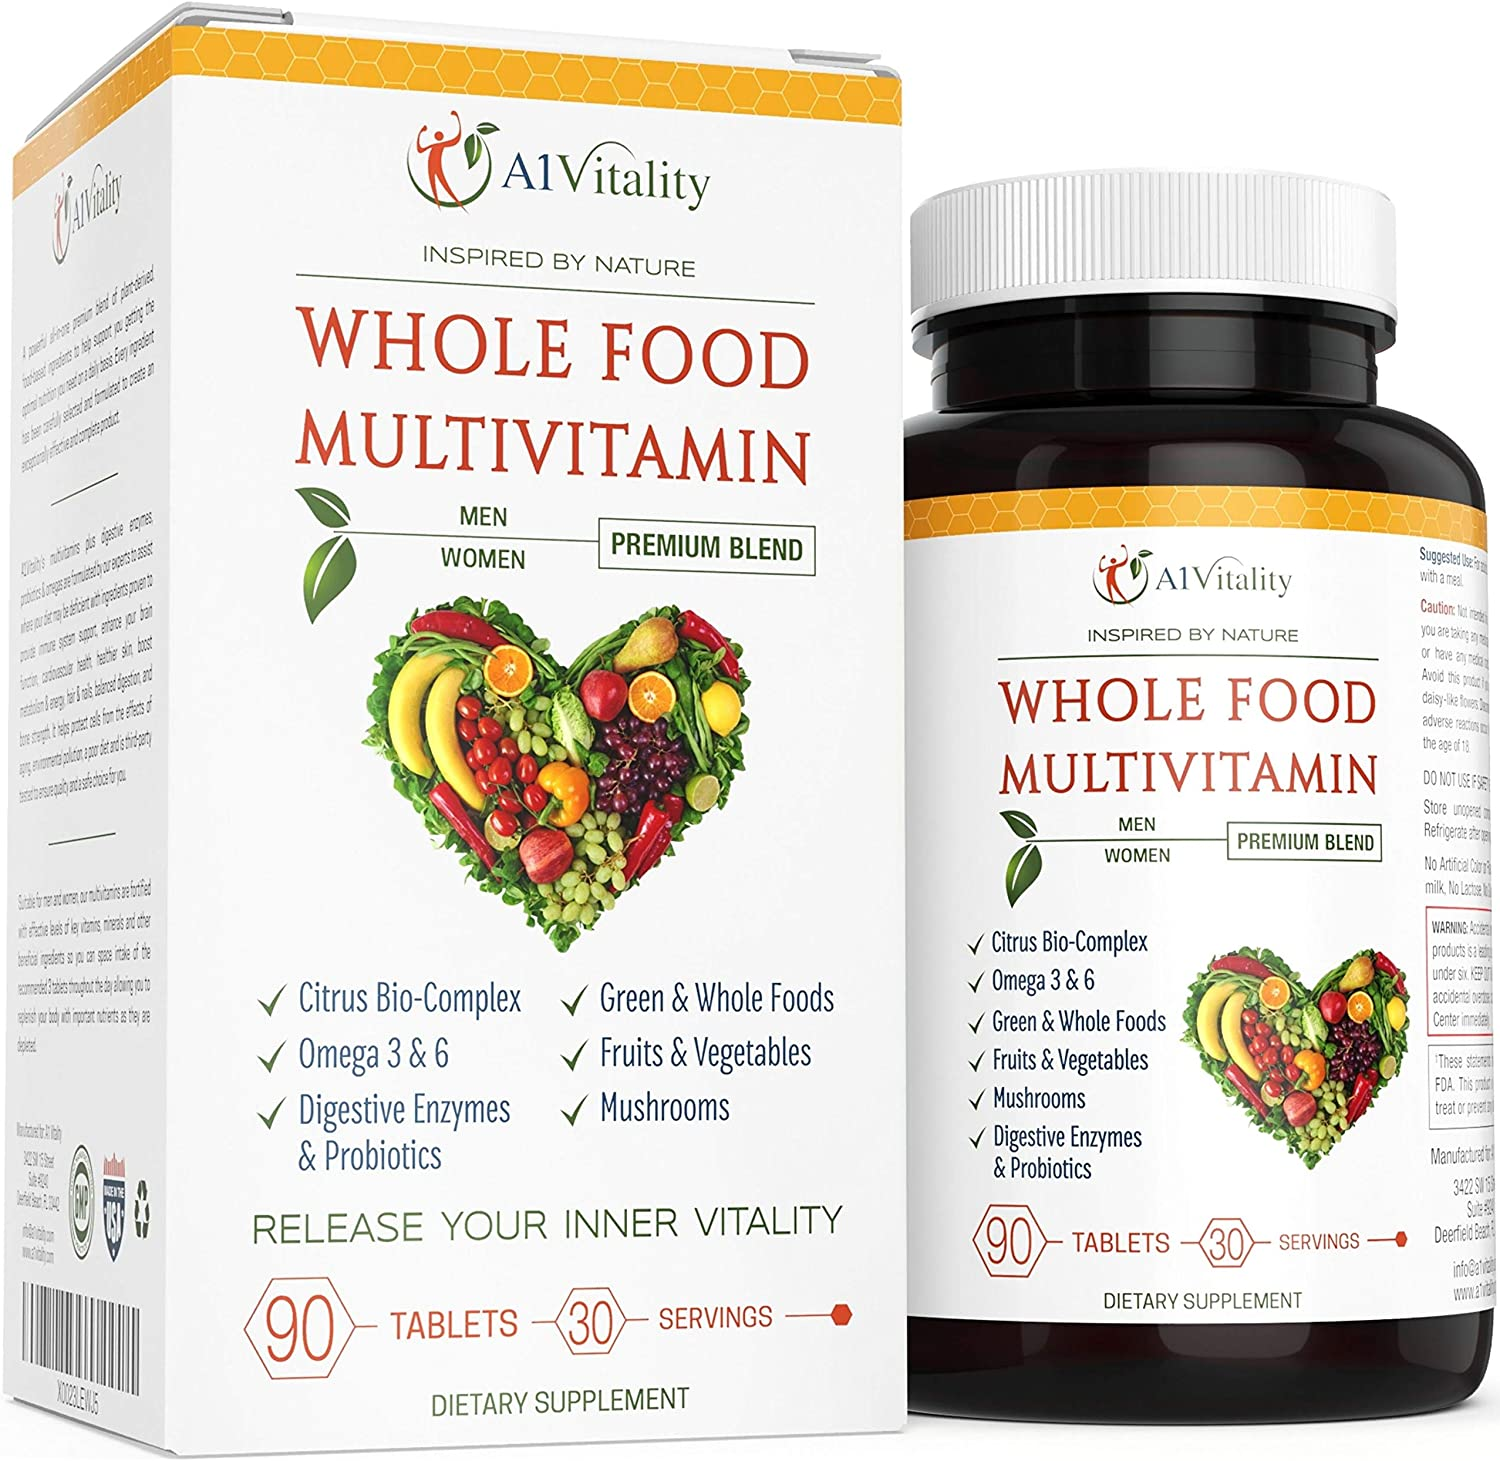 Whole Foods Multi-Vitamin For Women And Men - Natural Wholefood Blend Of Vitamins, Minerals, Digestive Enzymes, Probiotics, Omega 3 & 6, Vegetables, Fruit, Mushrooms, Boost Immune System & Antioxidant